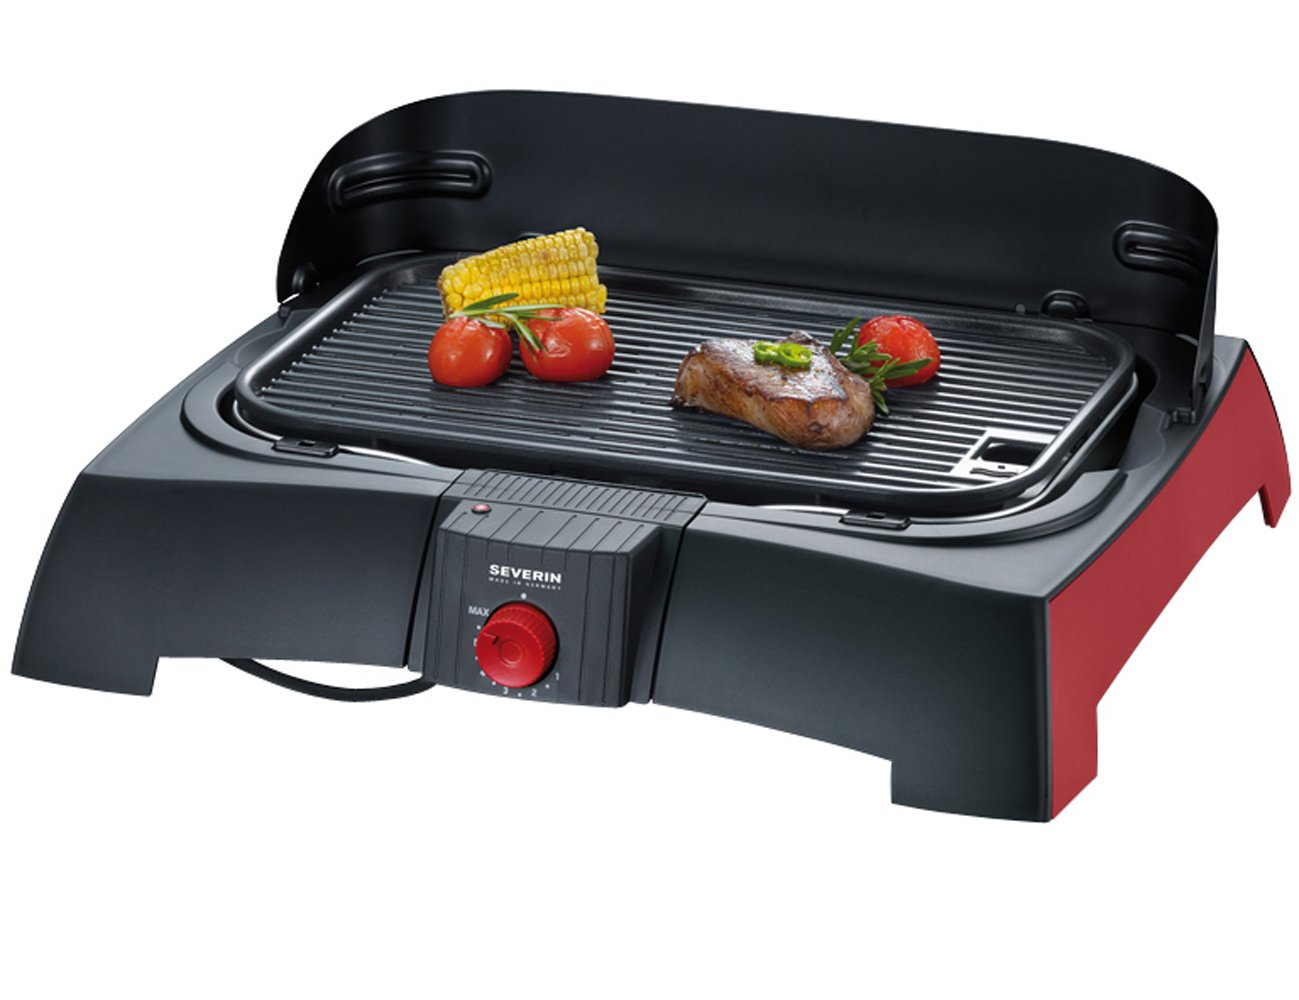 Severin Elektrogrill Defekt : Amazon severin pg barbecue grill schwarz rot